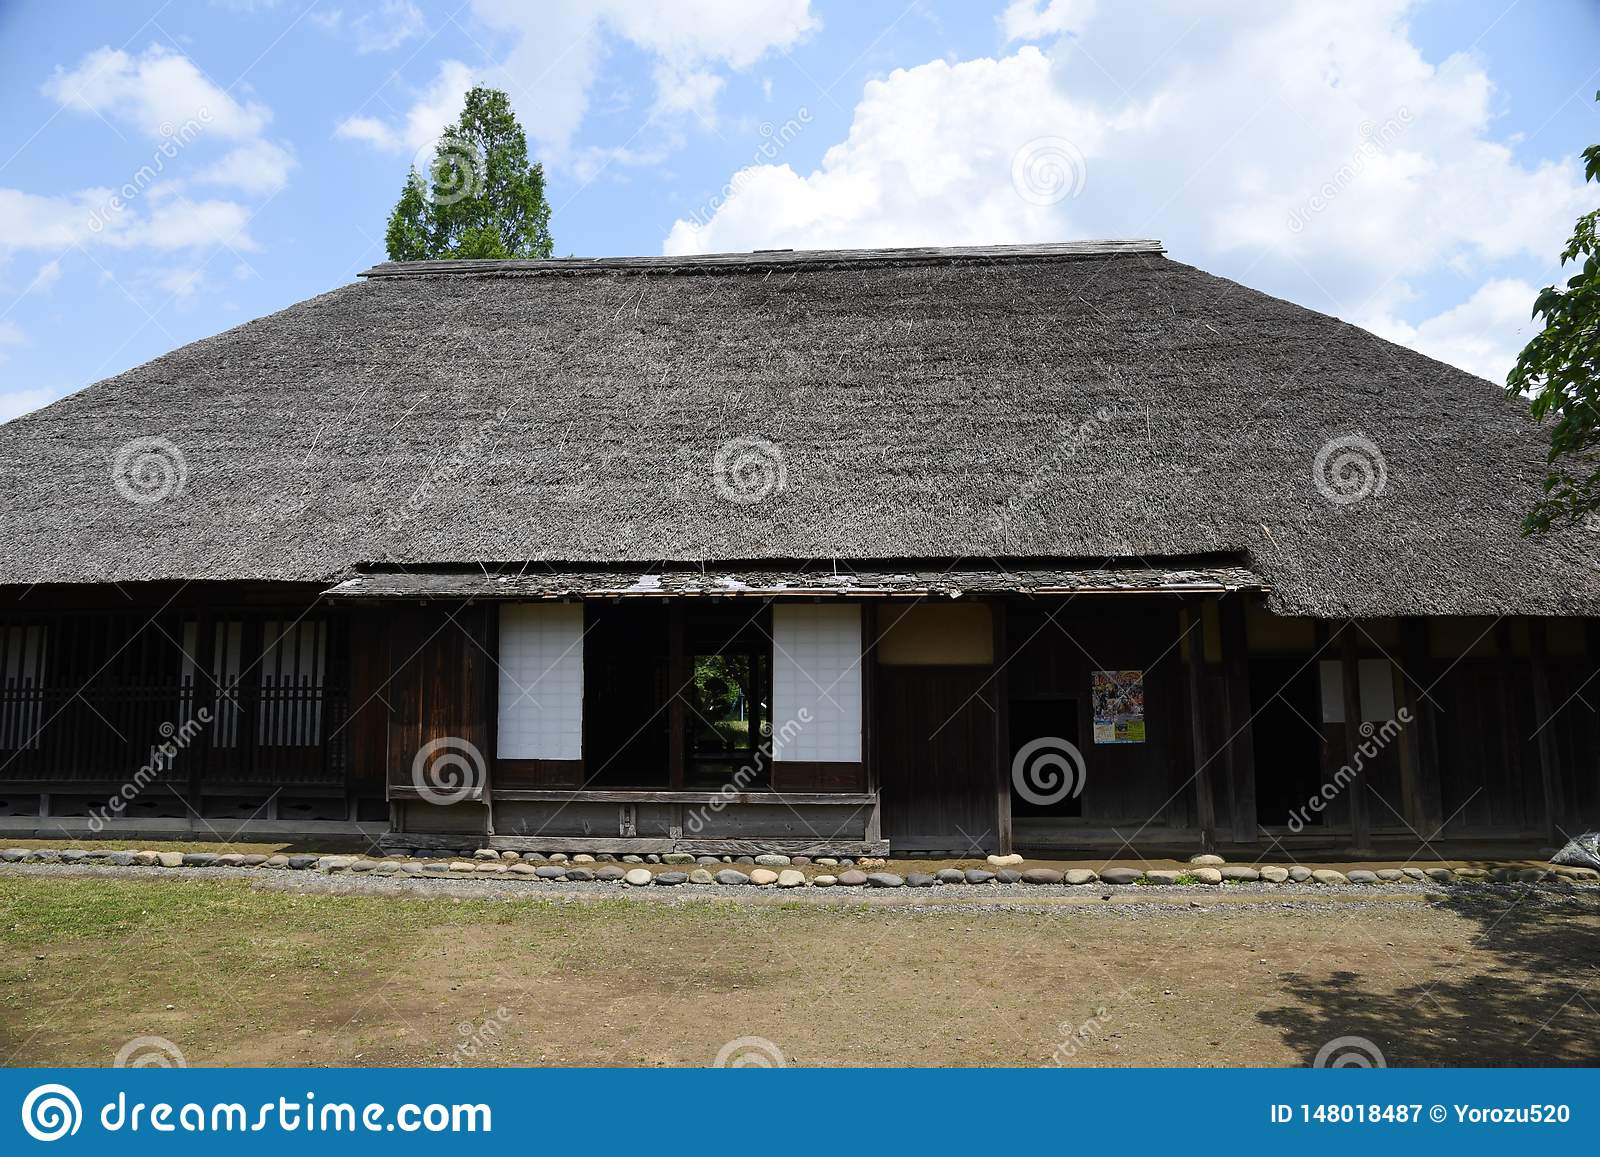 Japanese Traditional Old Folk House Stock Image Image Of Design Culture 148018487